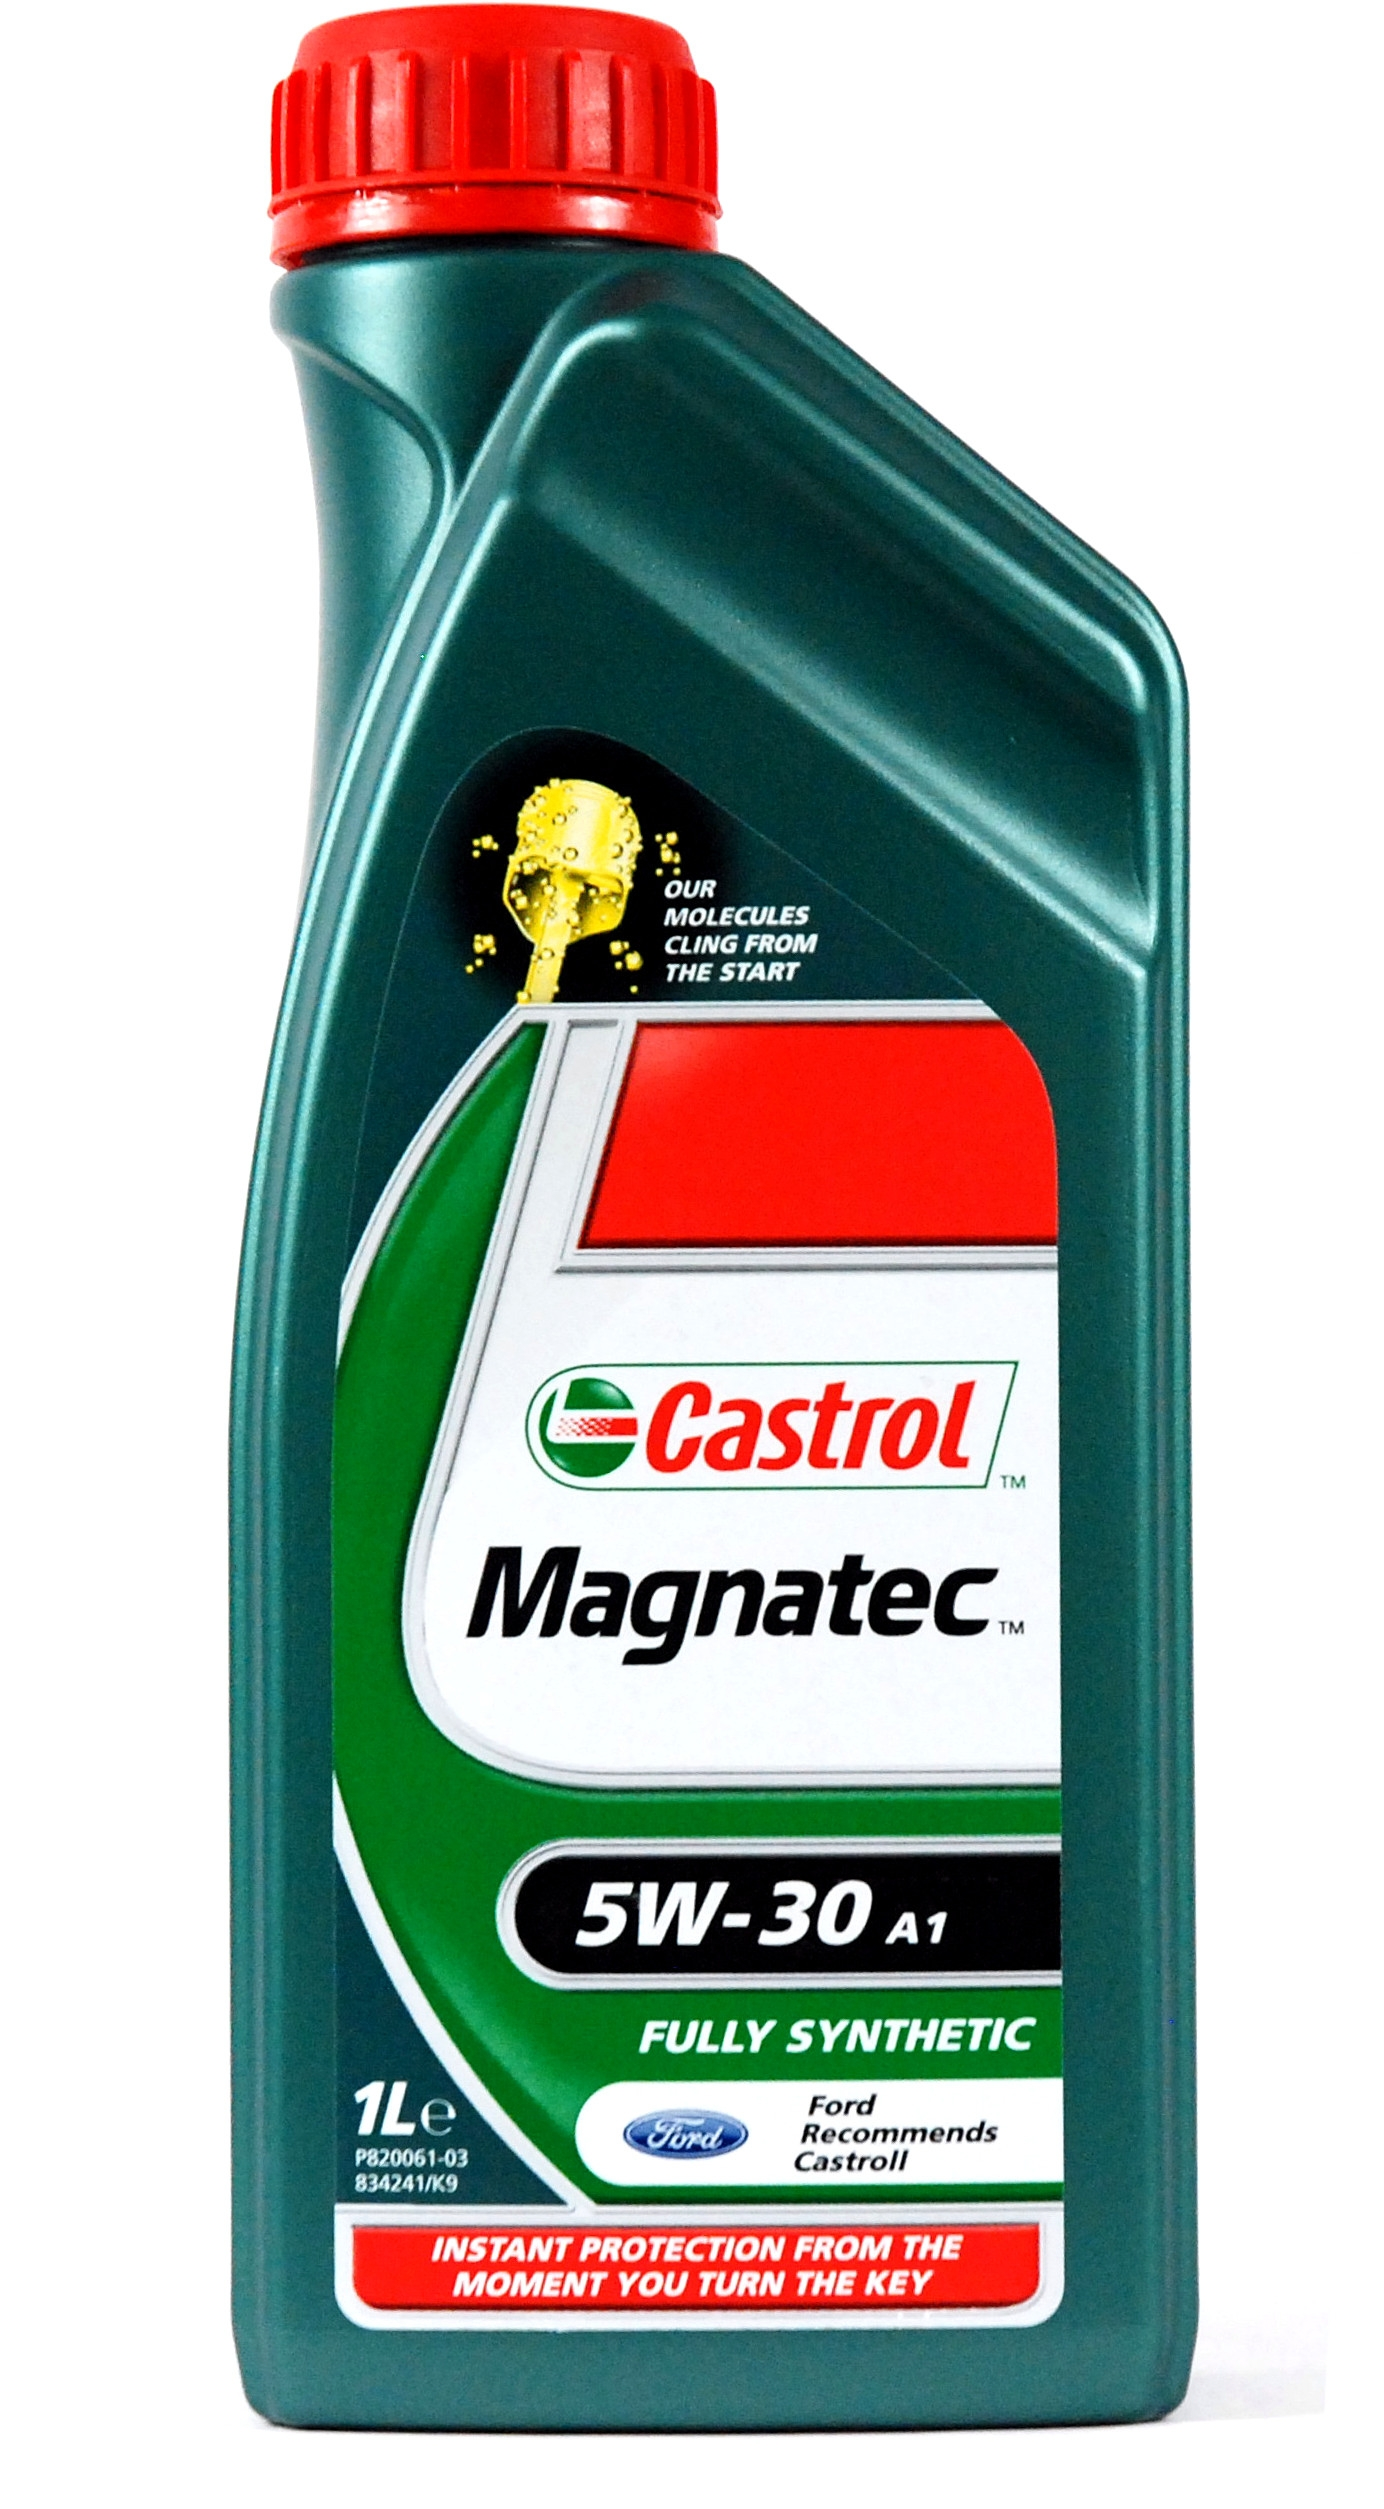 castrol magnatec fully synthetic 5w30 engine oil 1 litre. Black Bedroom Furniture Sets. Home Design Ideas